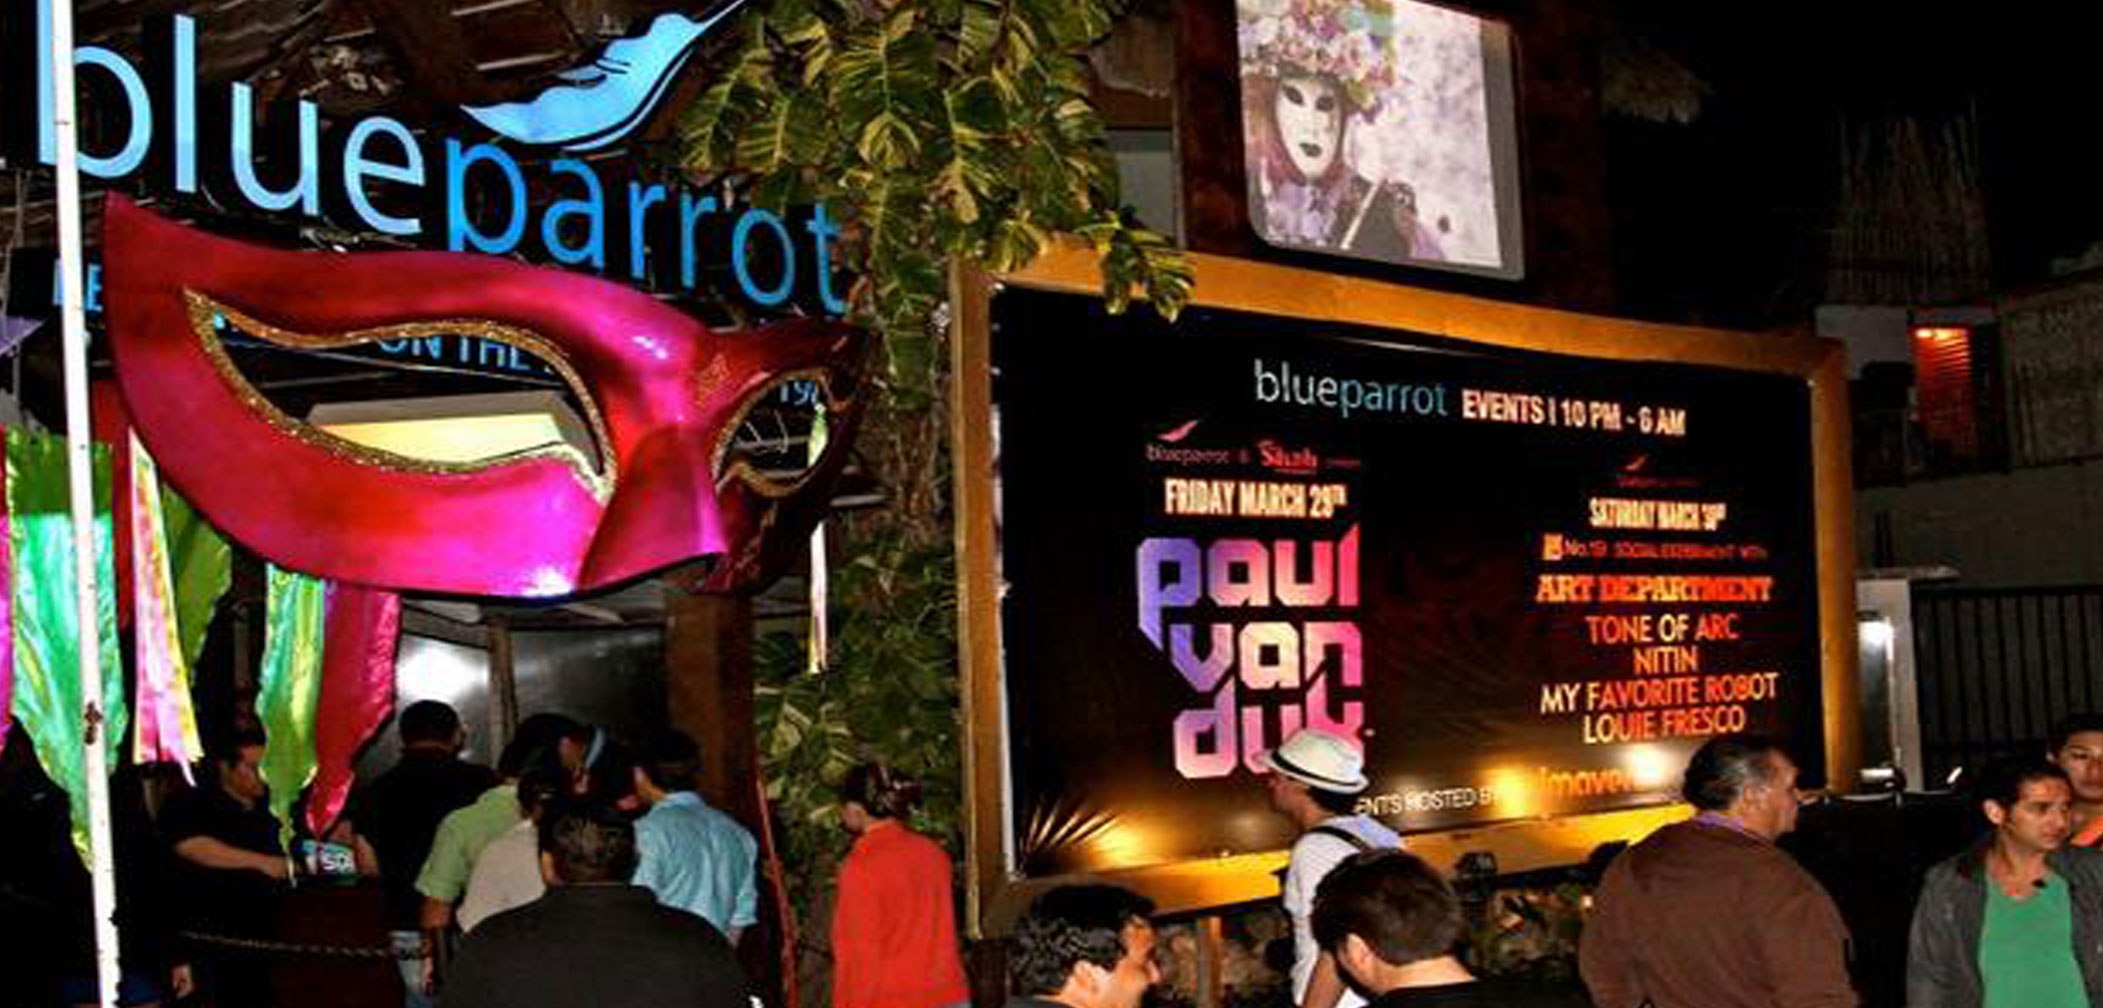 Playa Del Carmen, BPM festival, Blue Parrot, bar, shooting, Zetas, electronic music festival